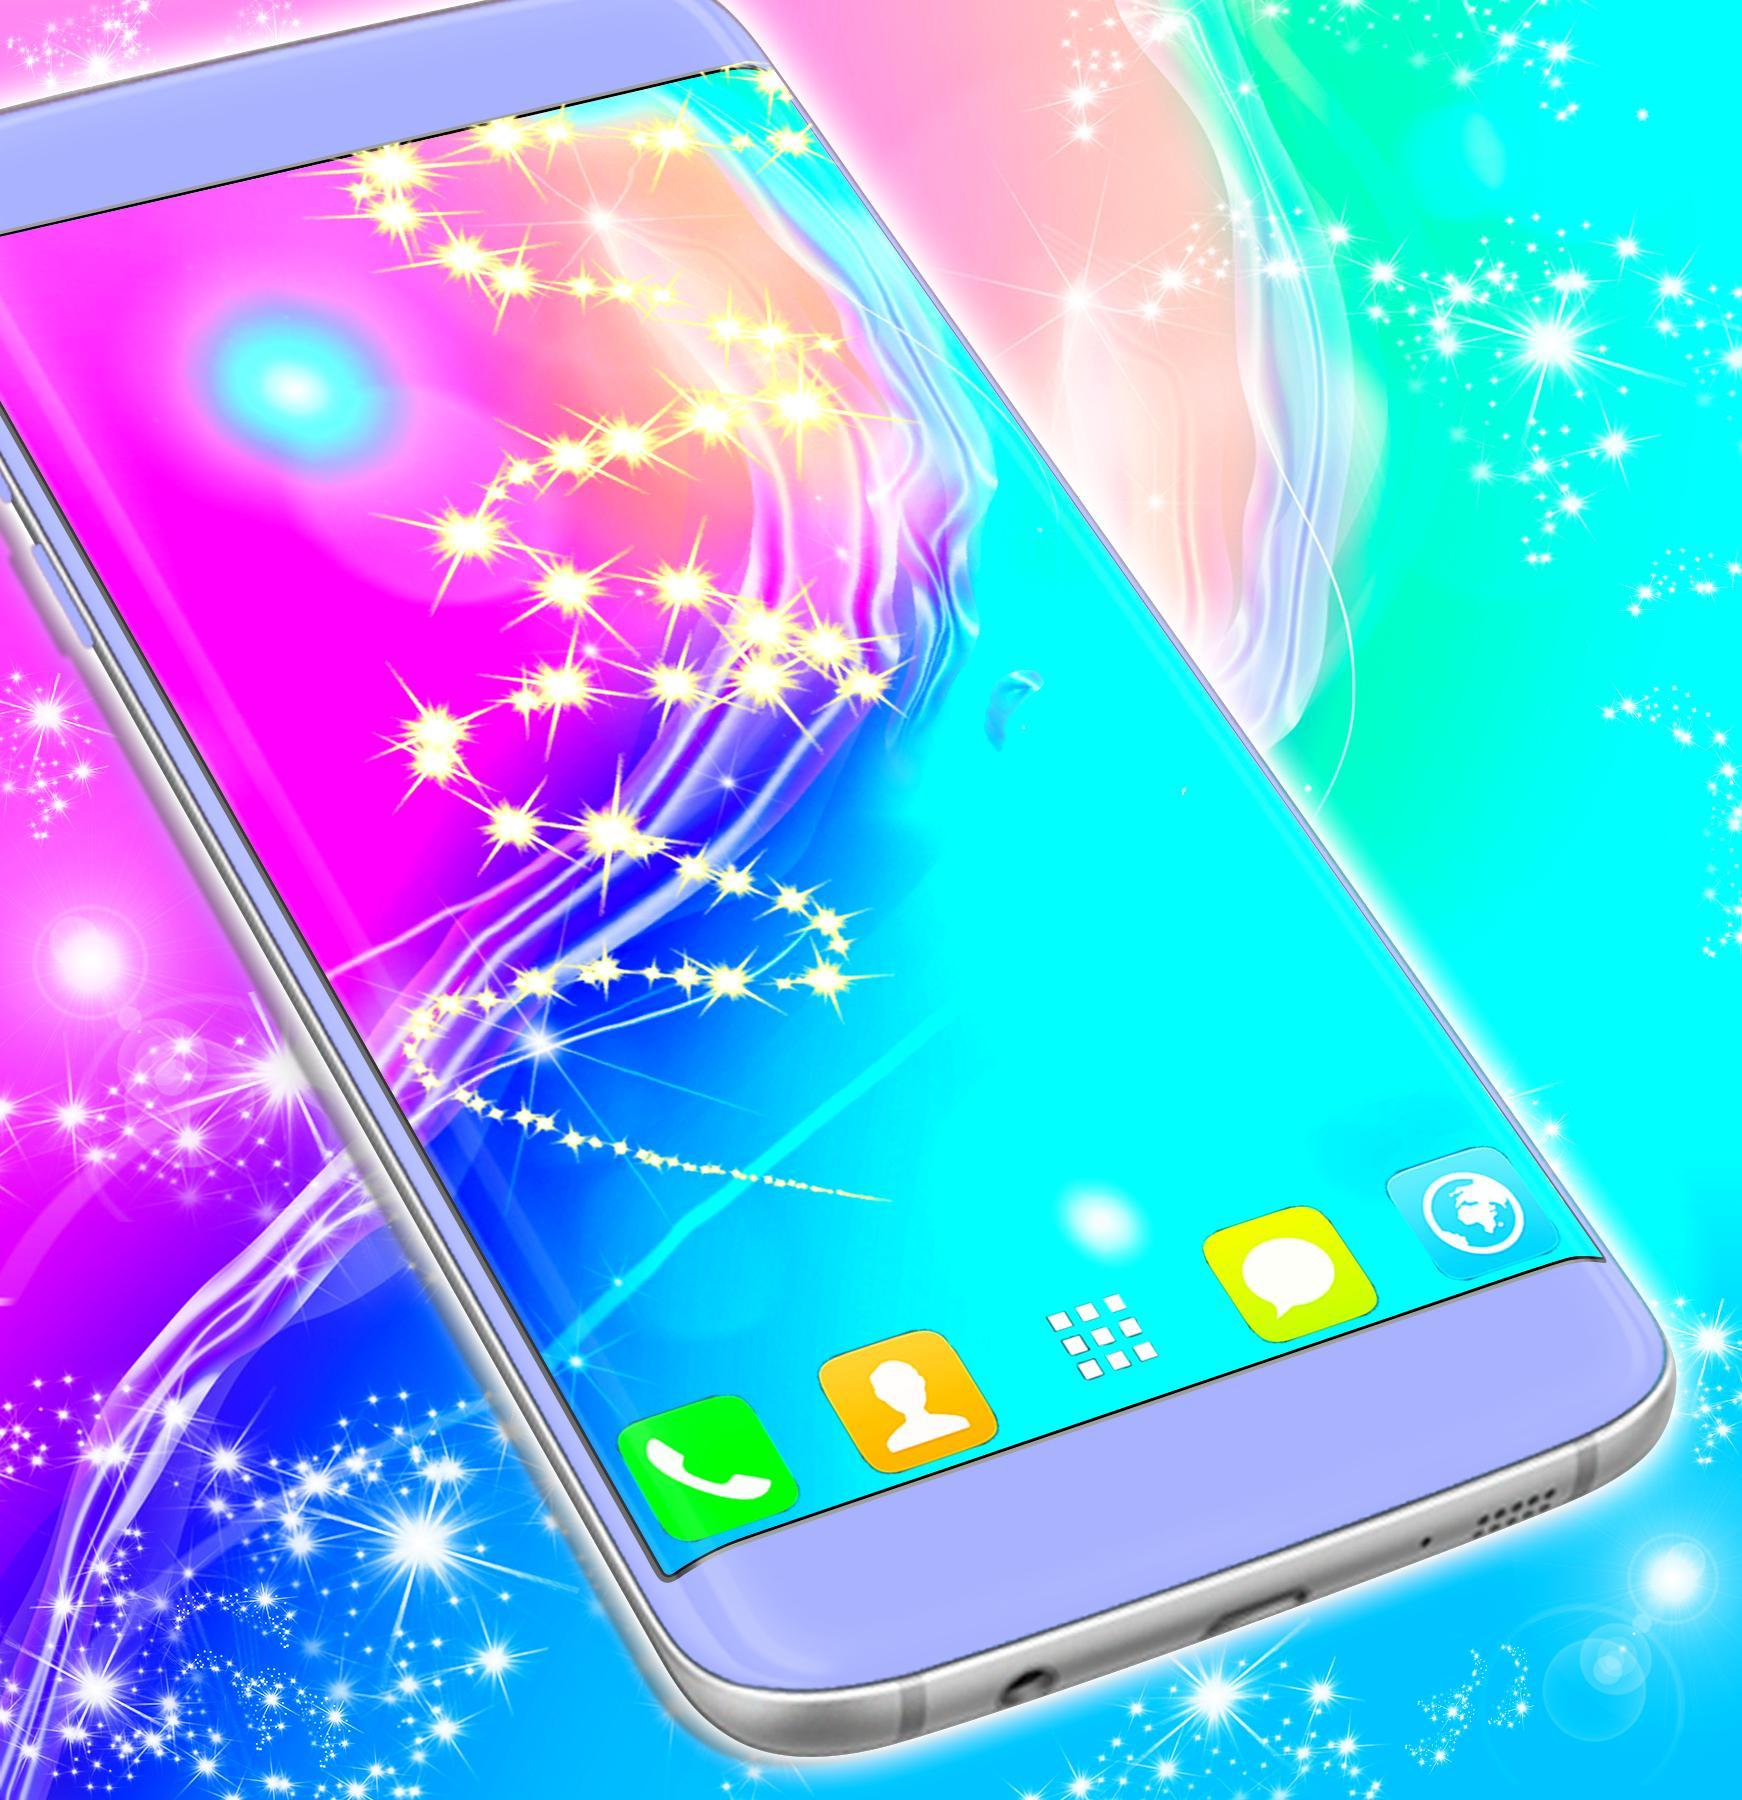 Hd Live Wallpapers For Samsung Galaxy J7 For Android Apk Download